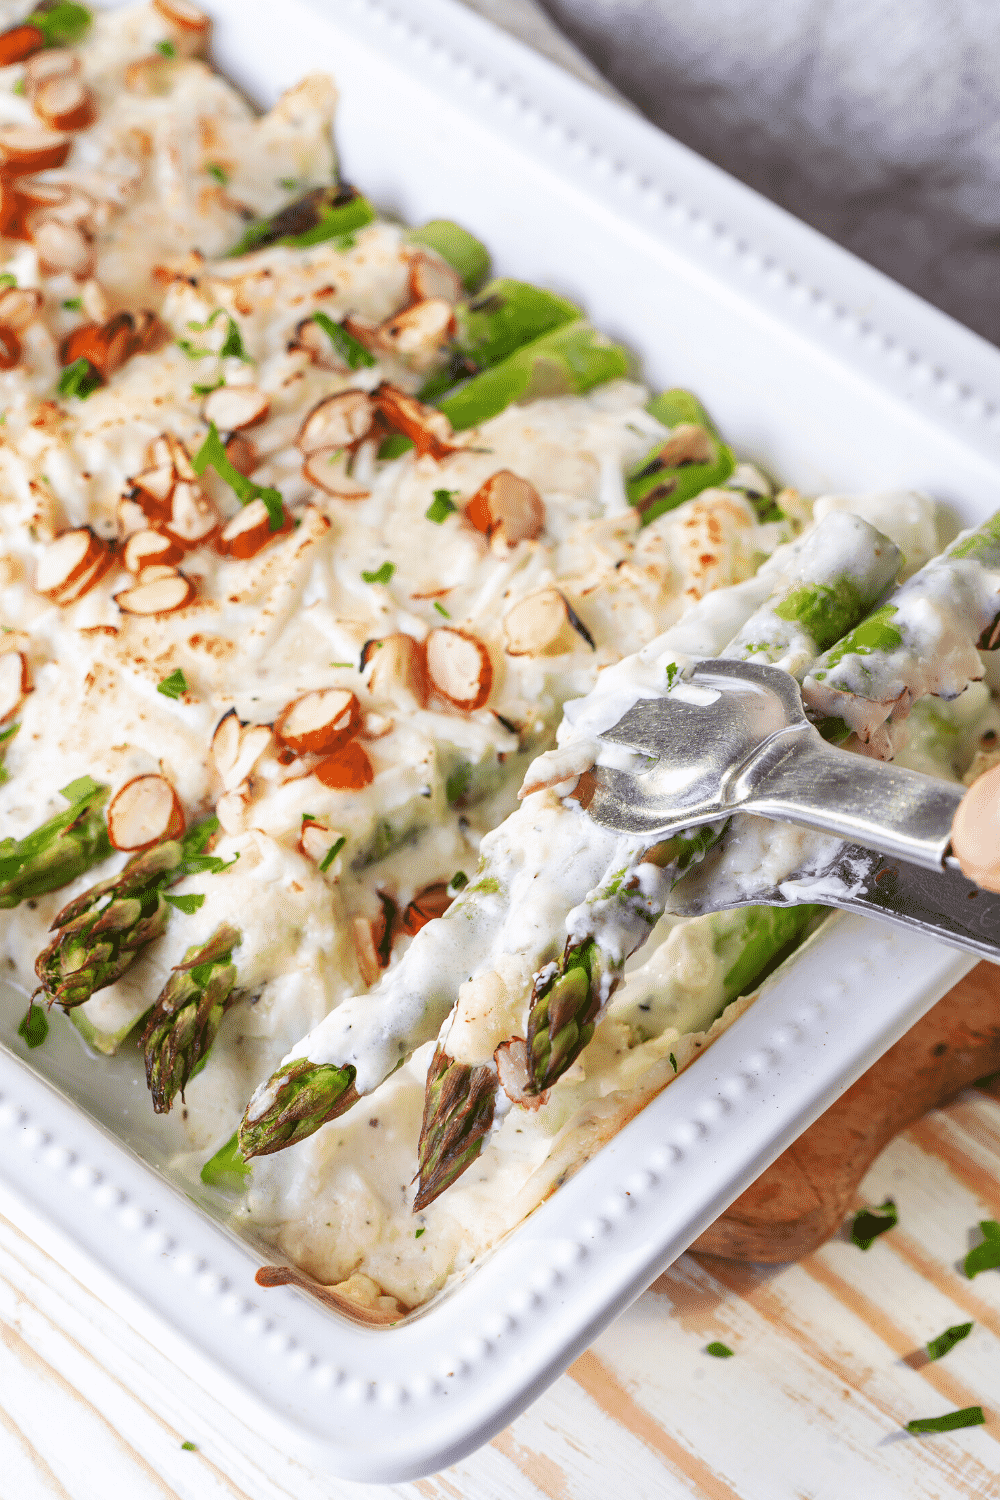 A white casserole dish filled with asparagus casserole. A fork is piercing three pieces of asparagus covered in a cream sauce and cheese.